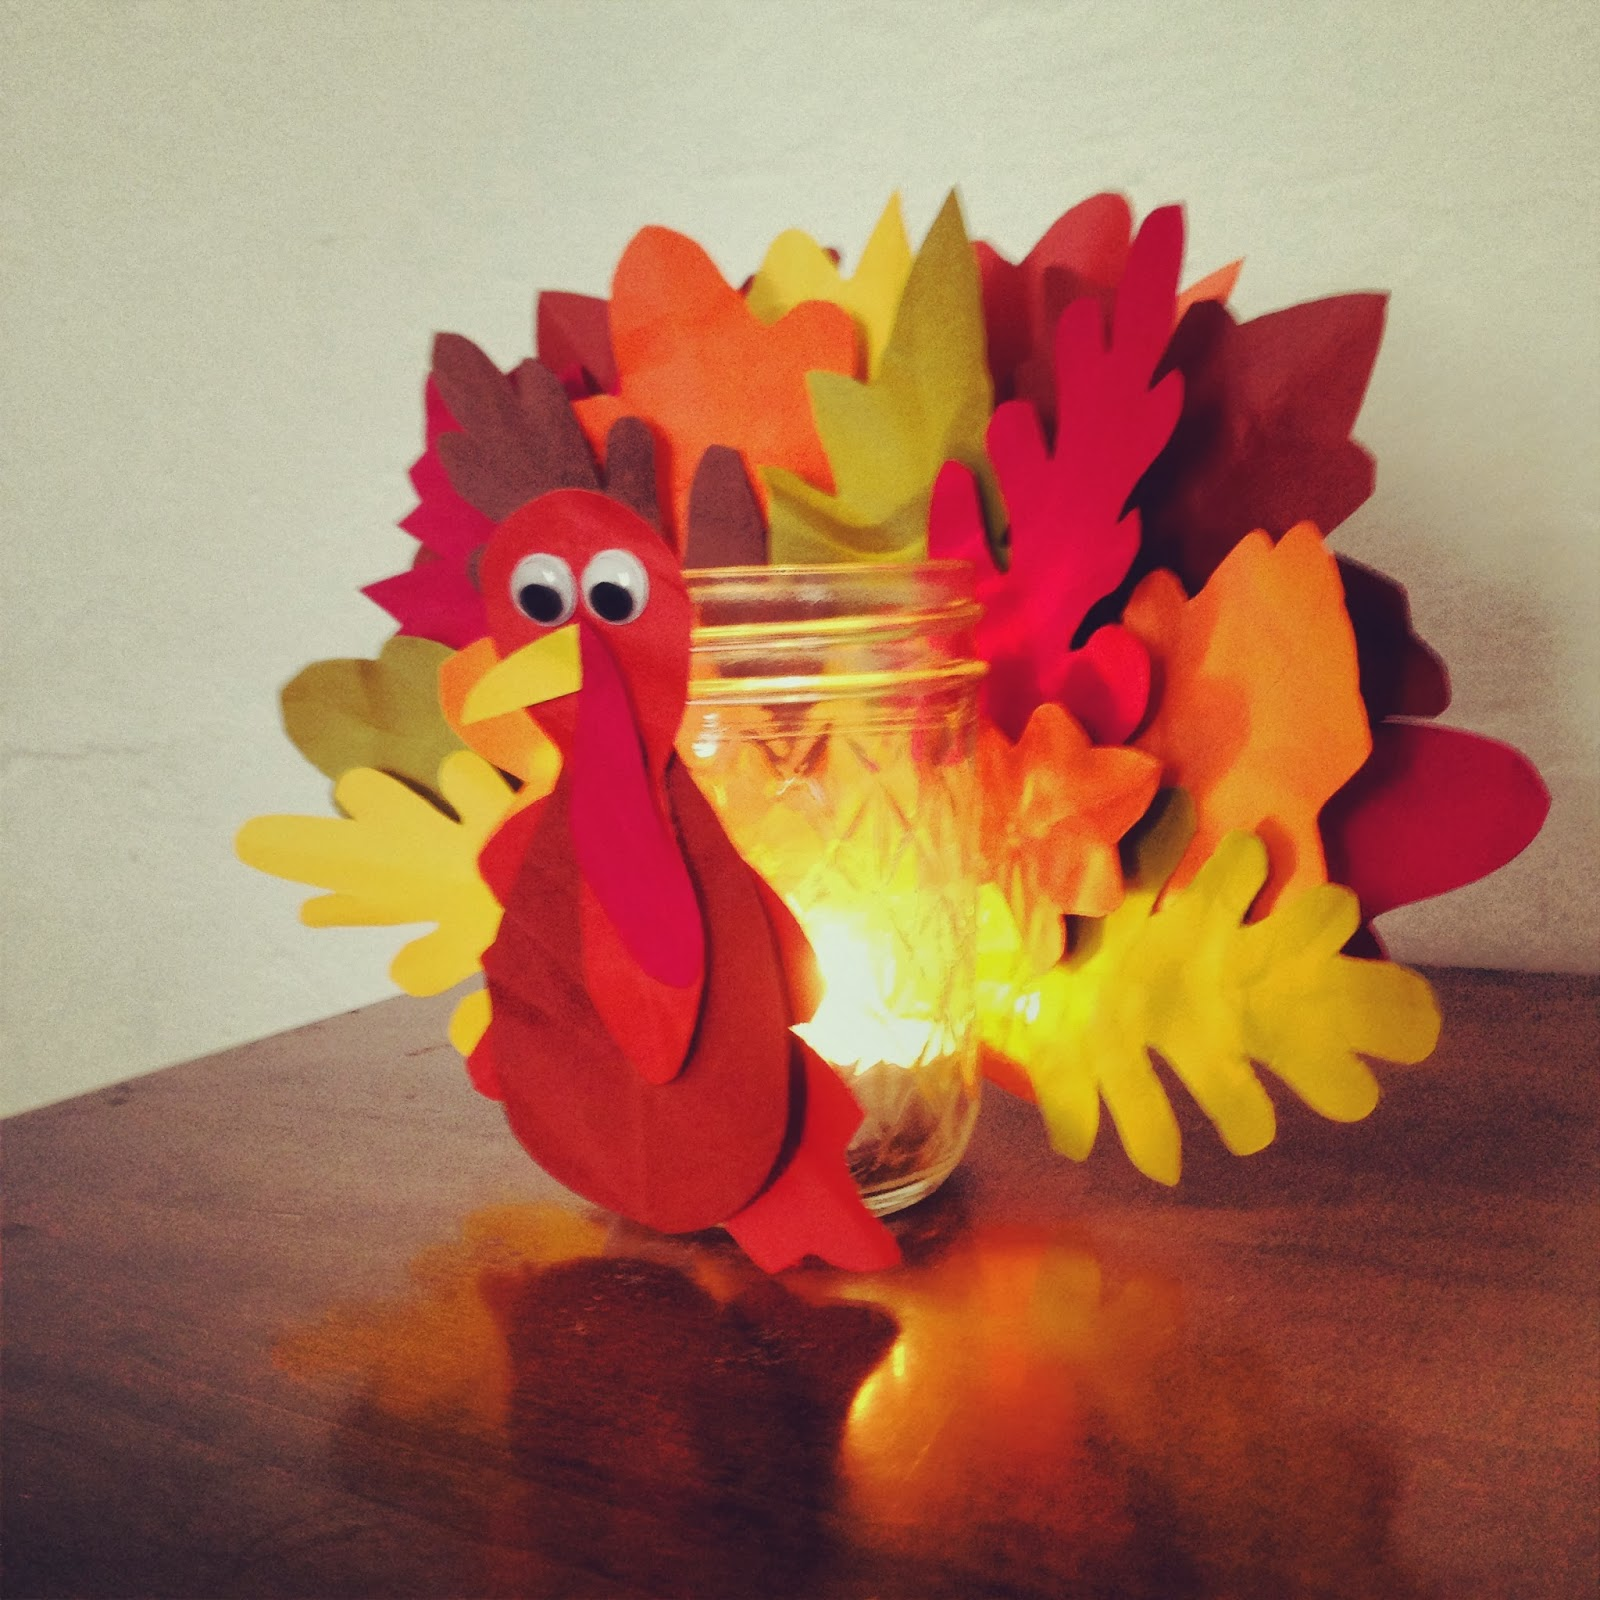 Paper thanksgiving decorations - photo#15